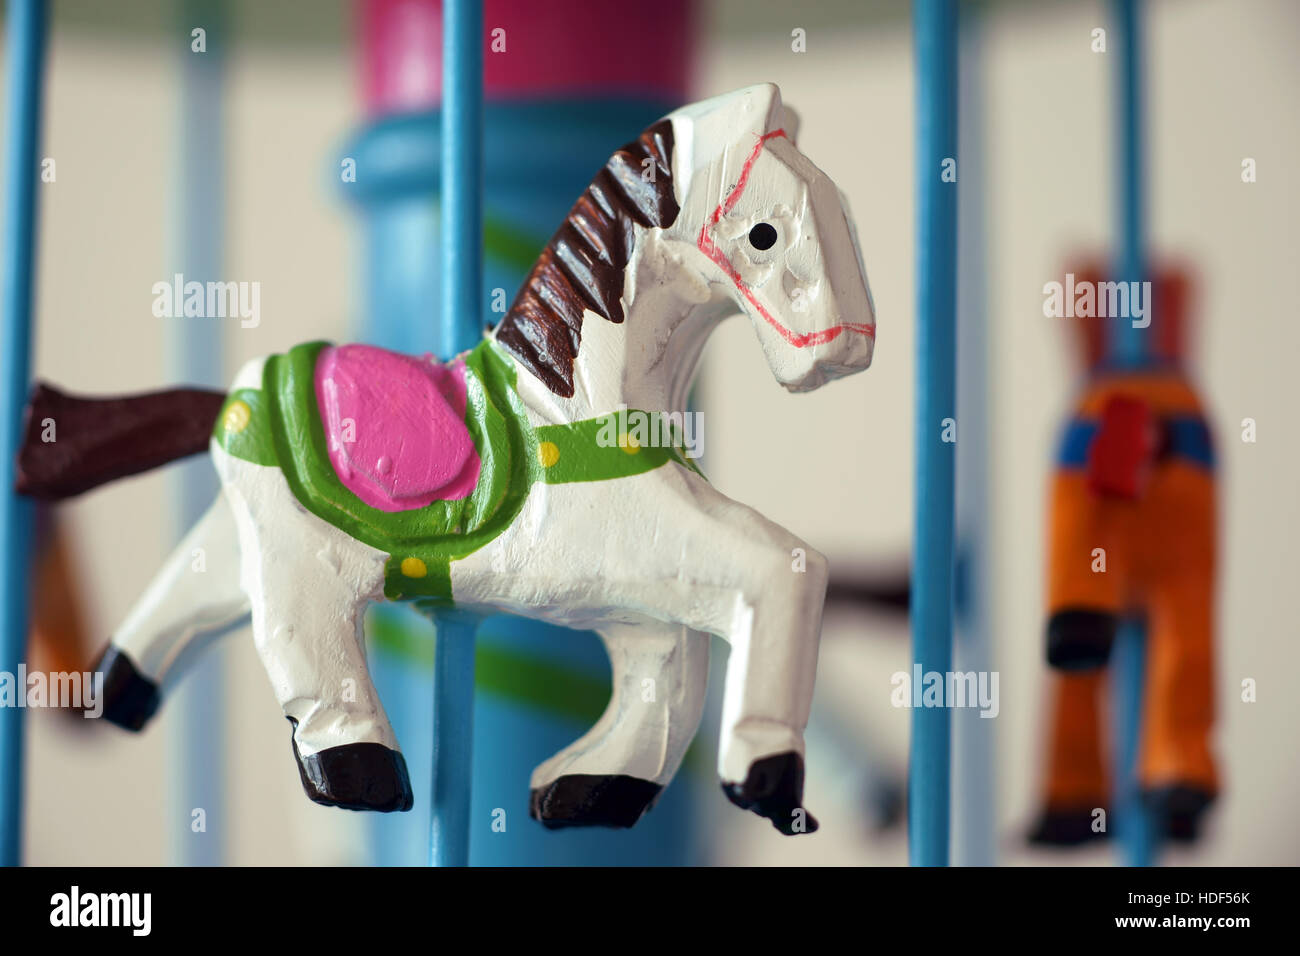 merry-go-round horse carillon, wooden carouse, made in italy, artisan, work of art Stock Photo